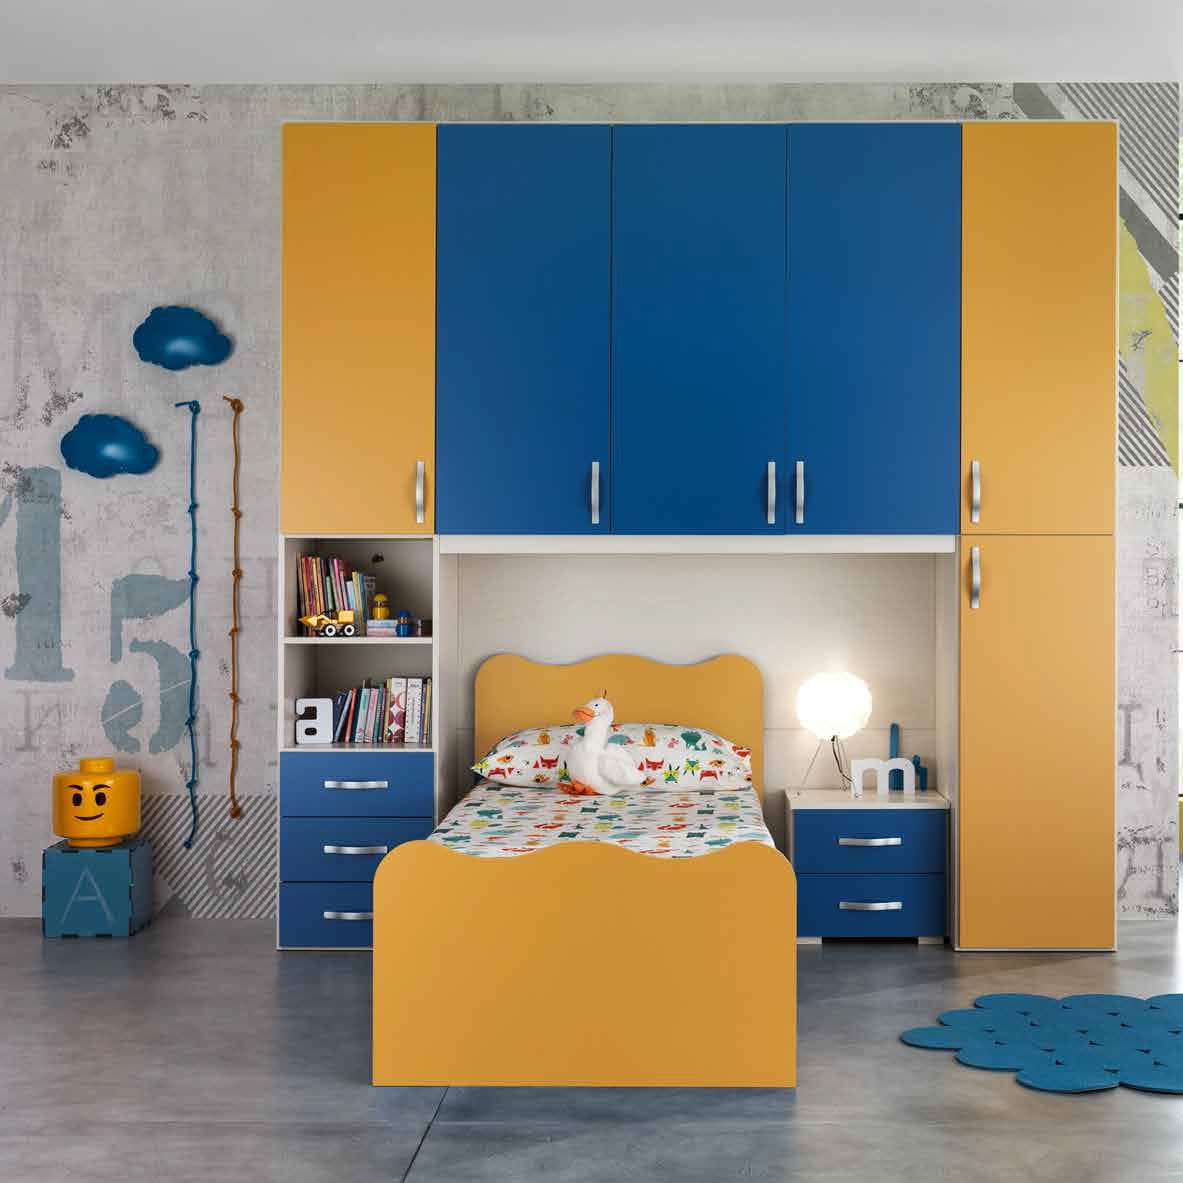 Blue Children S Bedroom Furniture Set 18 03 M C S Yellow Lacquered Wood Boy S